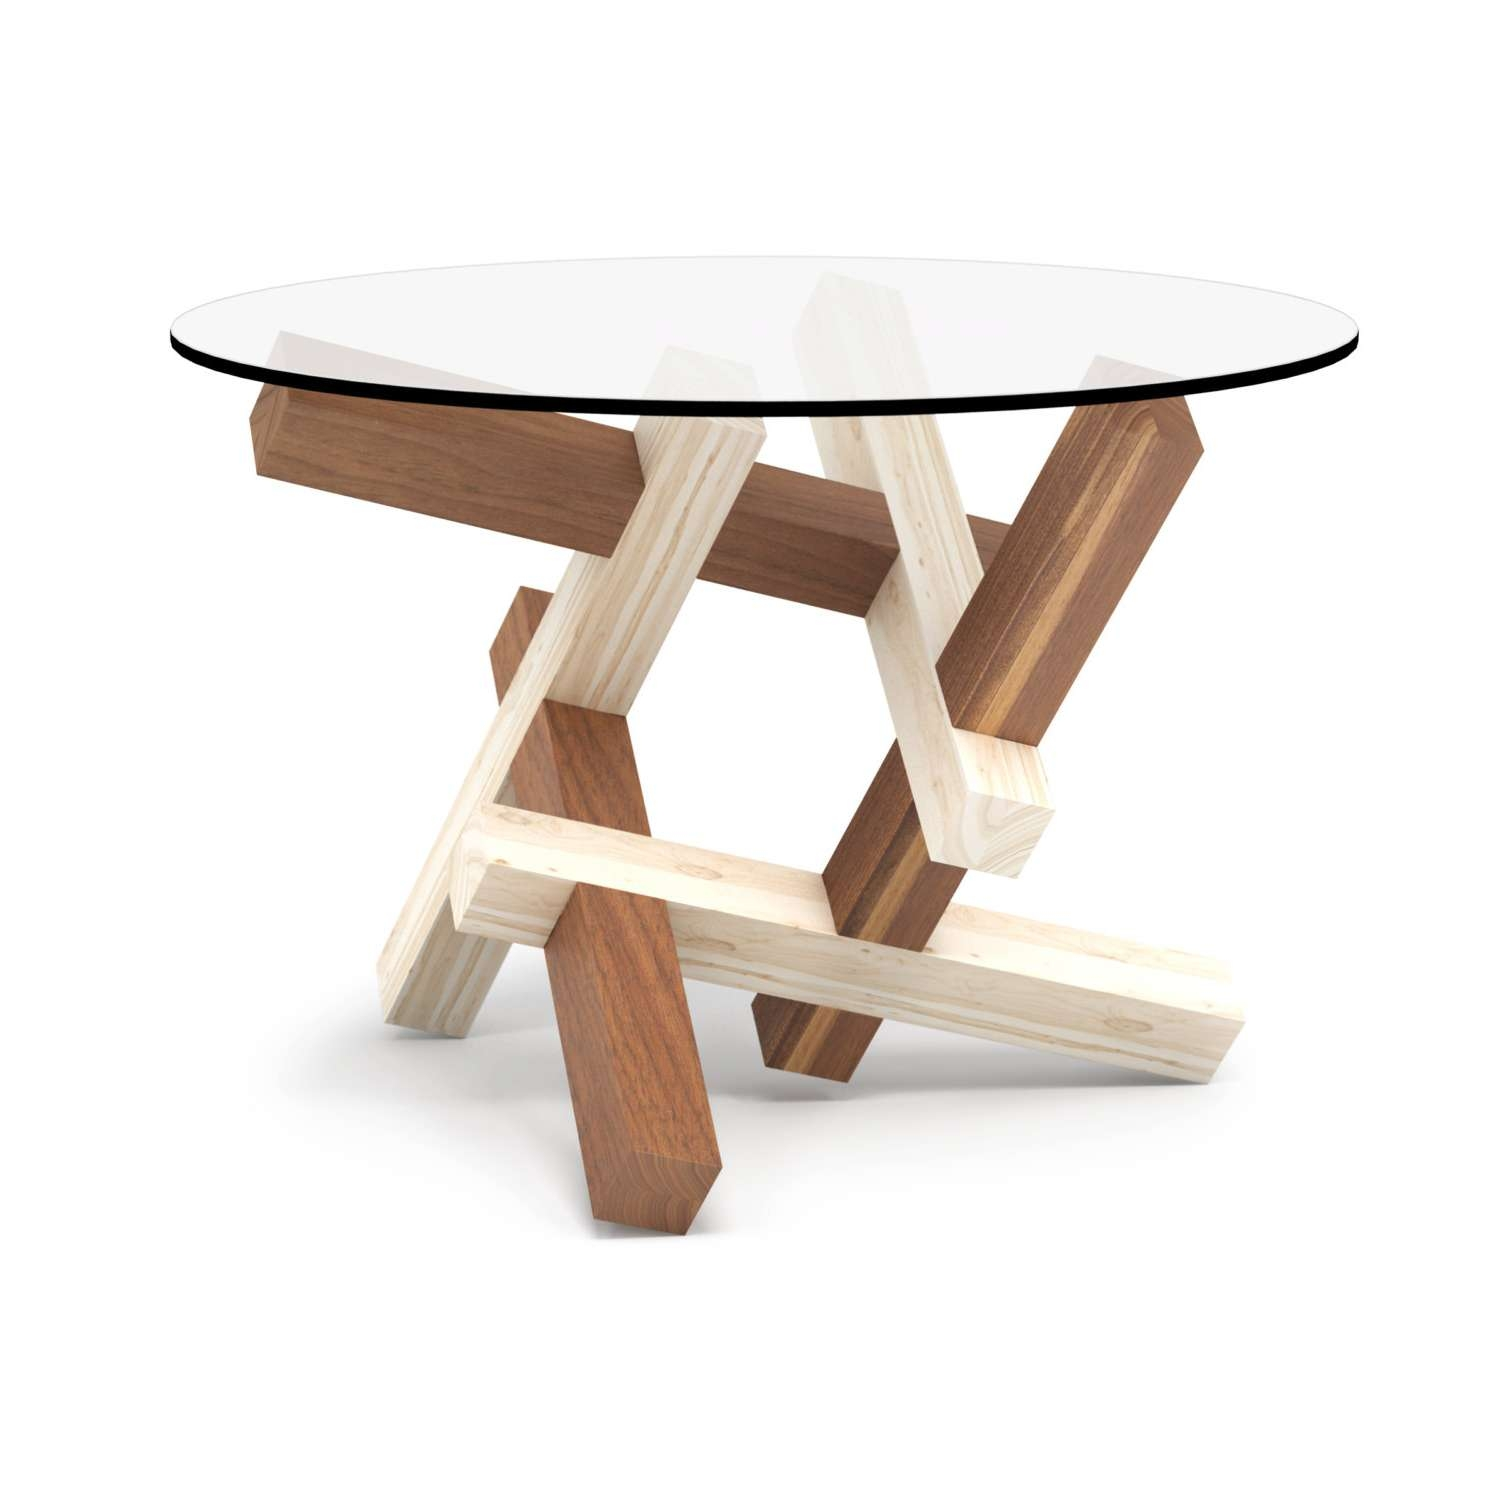 2x3 Round Wooden Coffee Table Puzzle Round Glass Table Within Well Known Puzzle Coffee Tables (View 2 of 20)